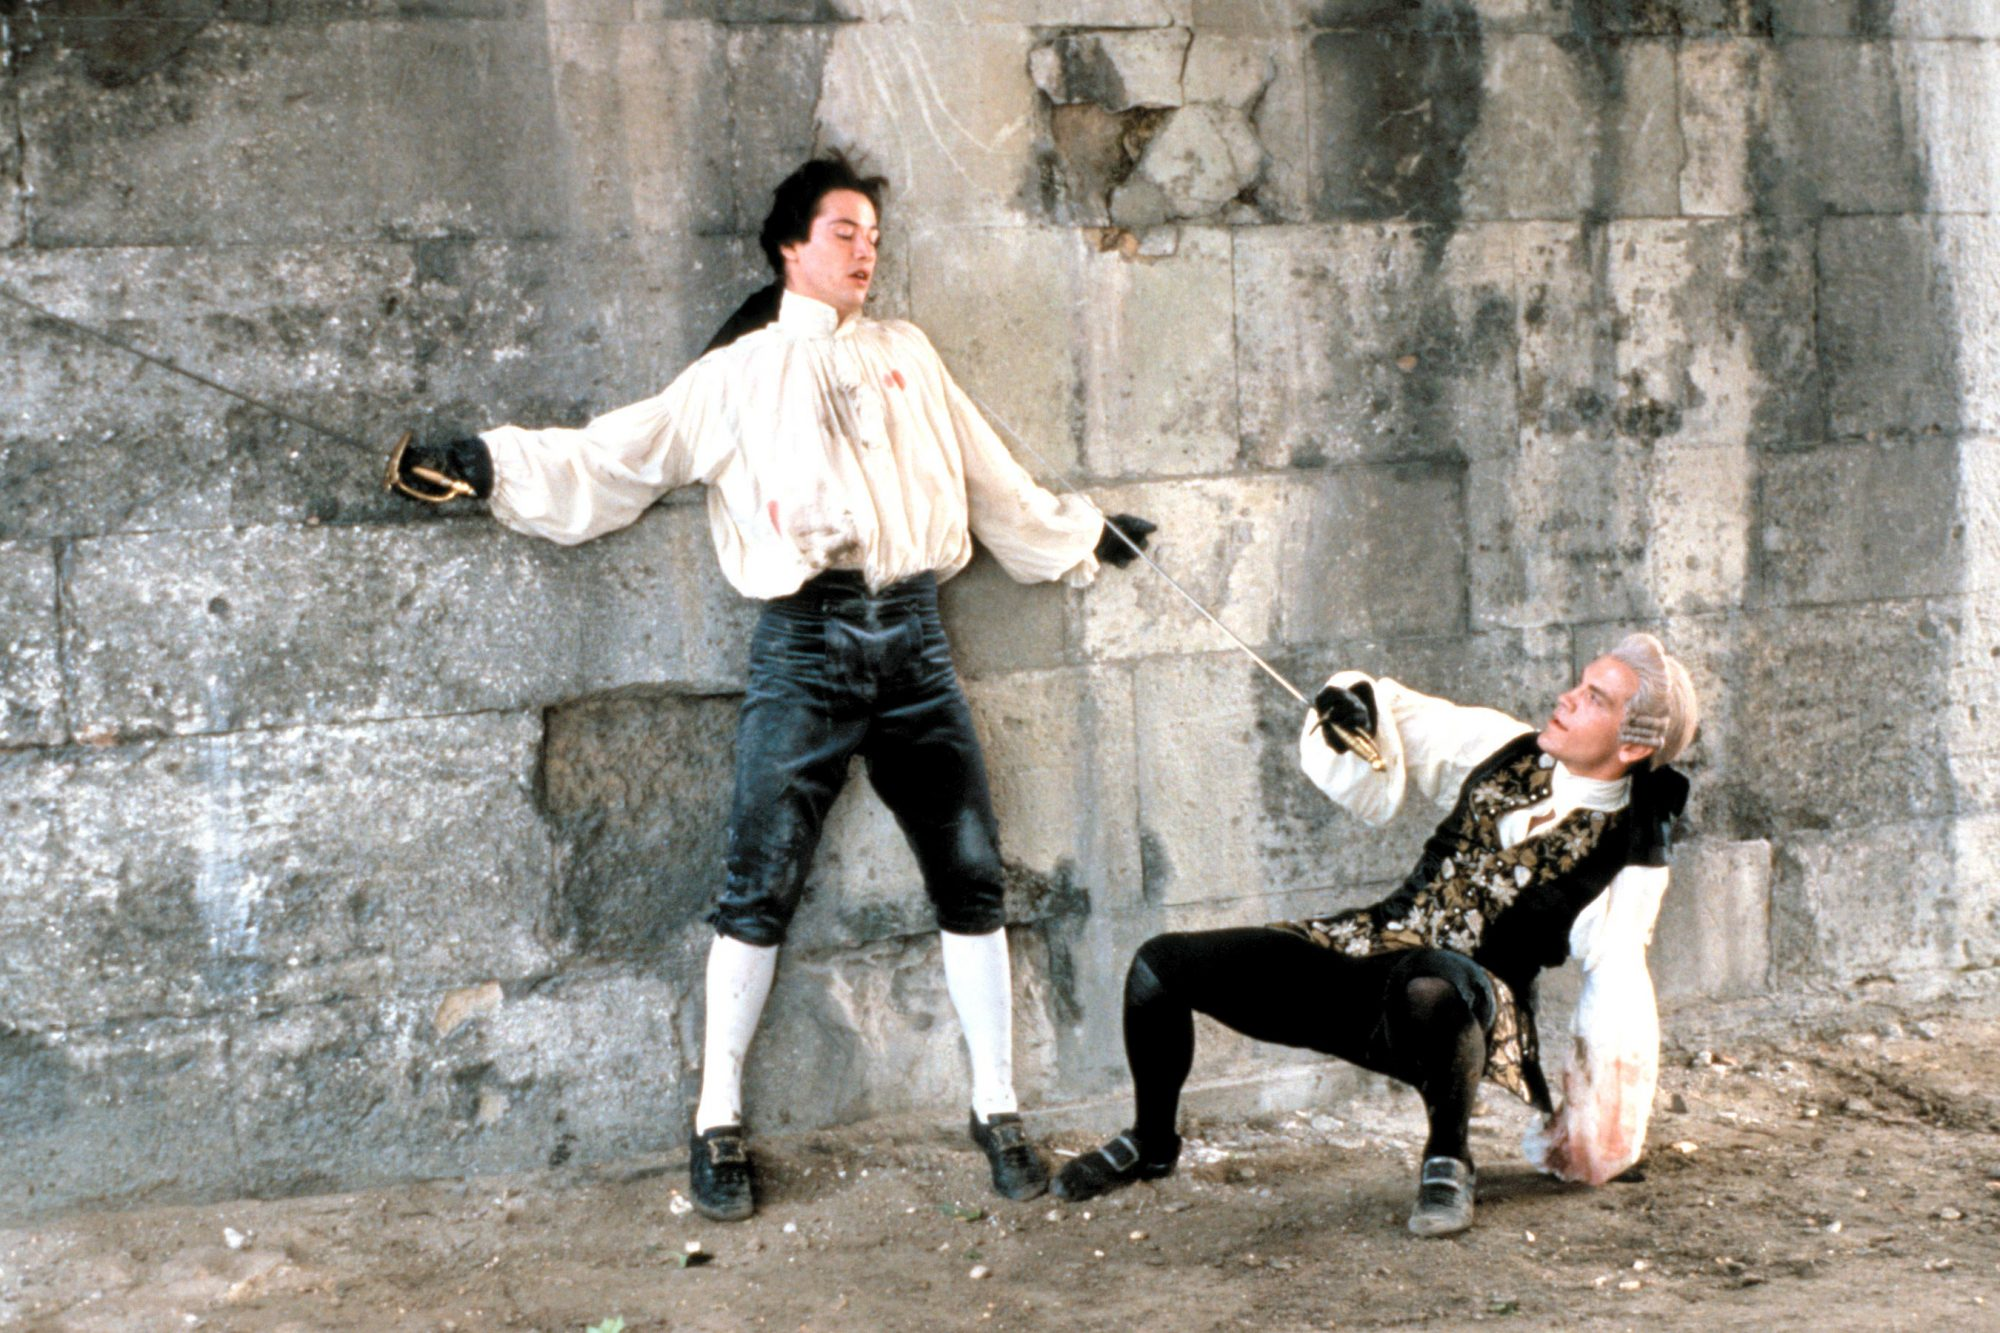 DANGEROUS LIAISONS, Keanu Reeves, John Malkovich, 1988, (c) Warner Brothers/courtesy Everett Collect